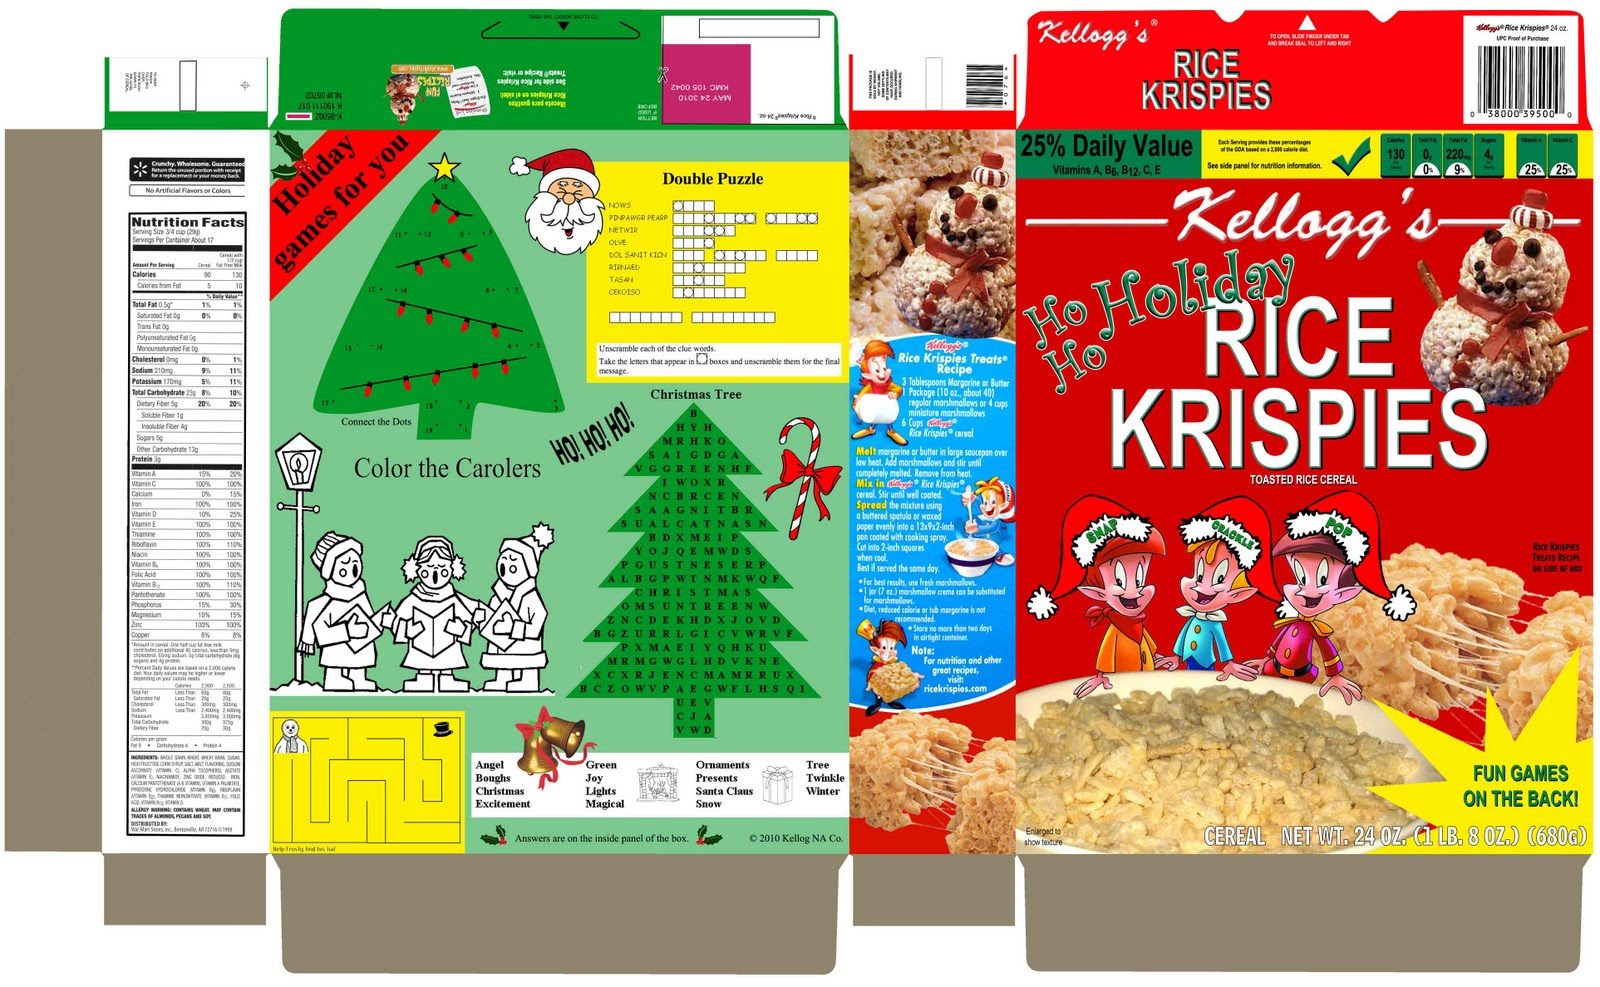 Photoshop skillz for Design your own cereal box template